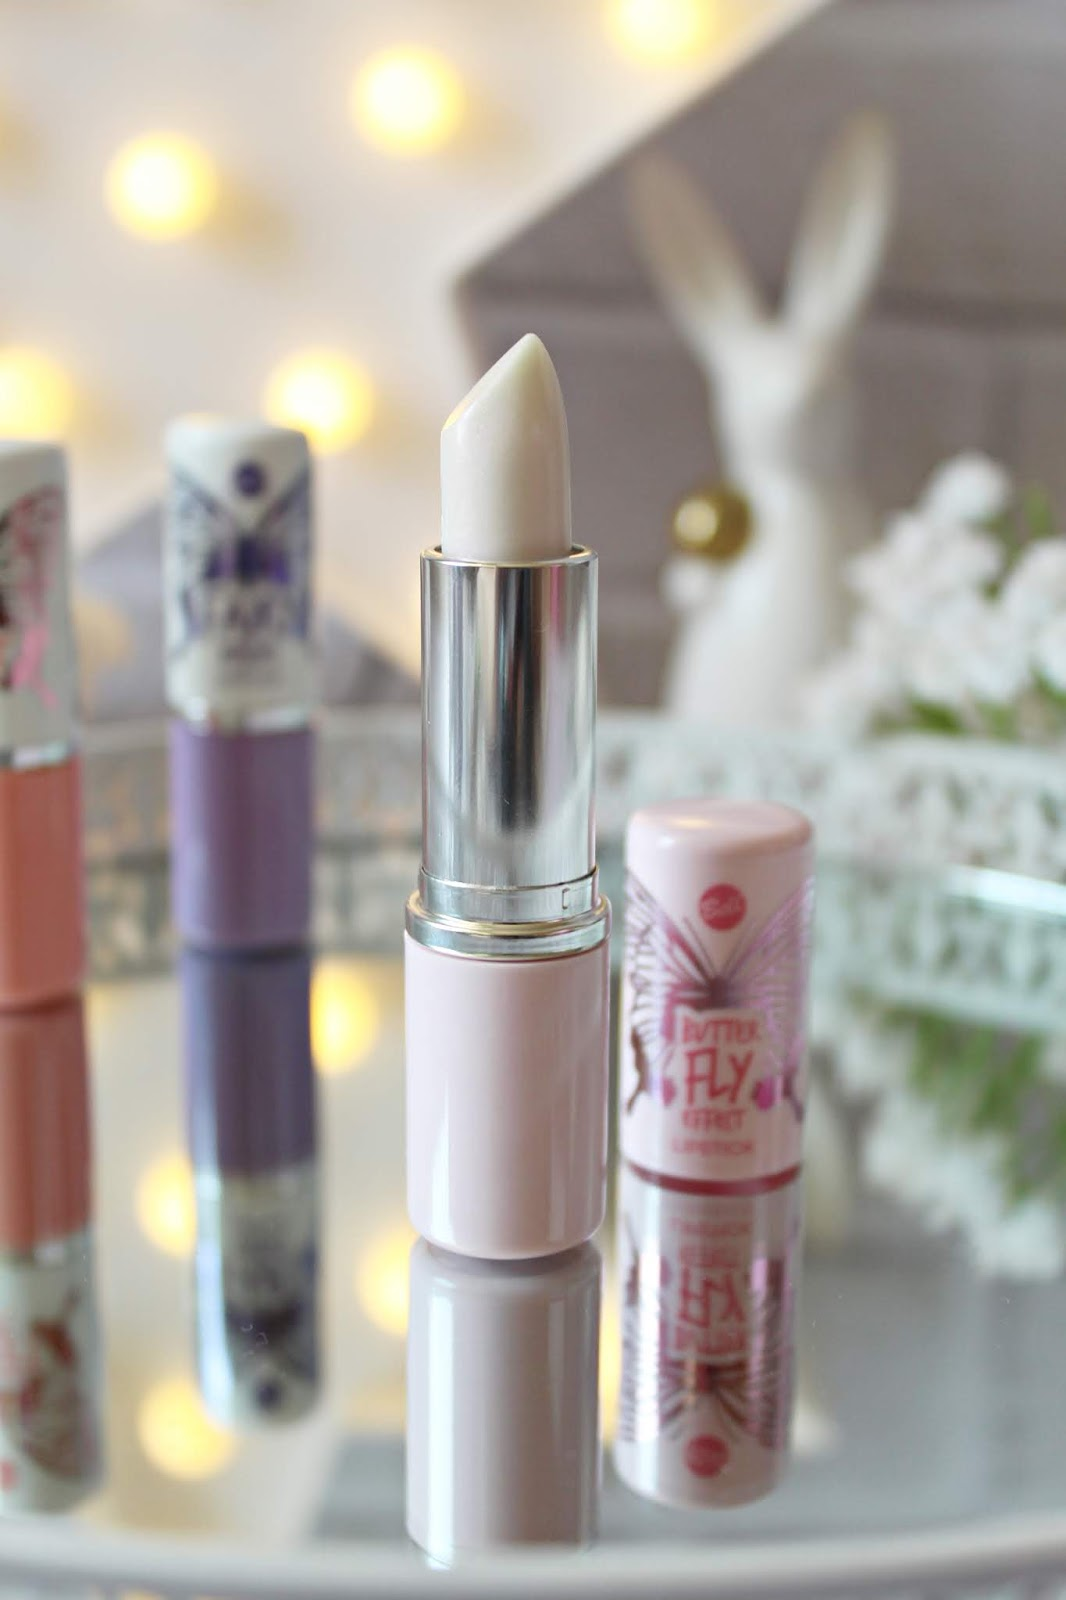 POMADKI DO UST BELL Magical Sweet Lips, Fairy Kisses Lipstick & Butterfly Effect Lipstick